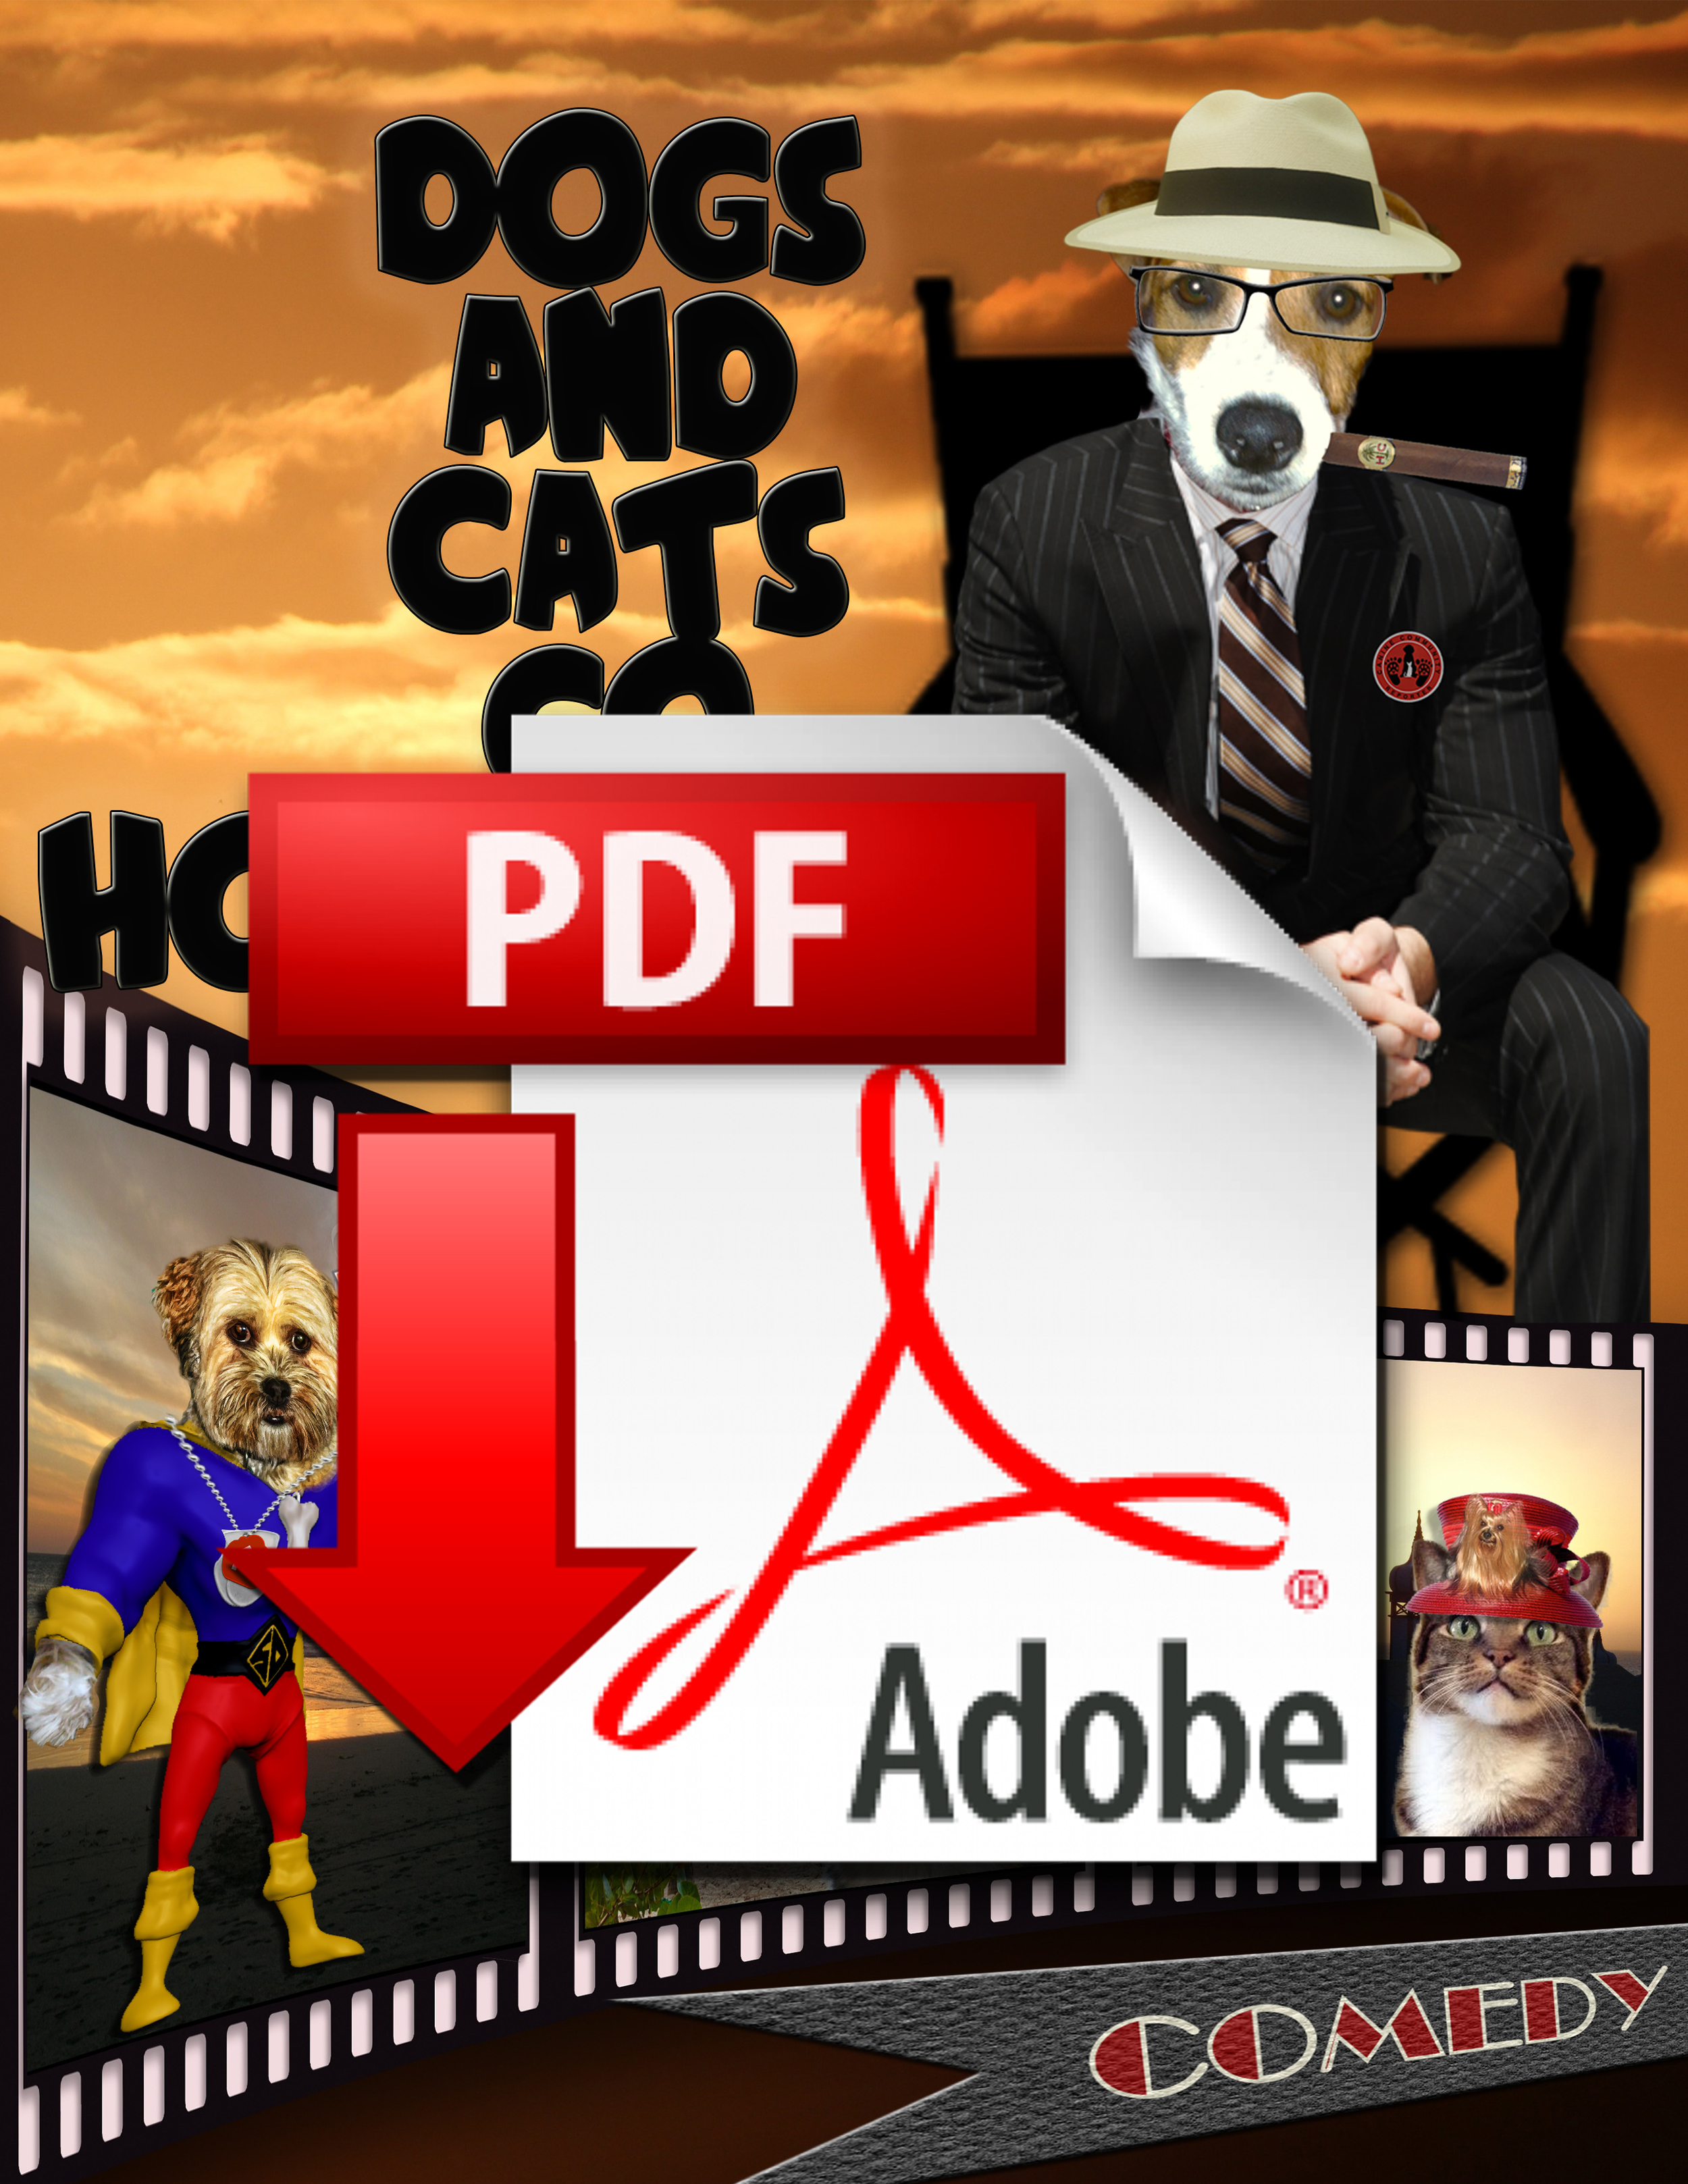 dogs and cats go hollywood pdf download.jpg